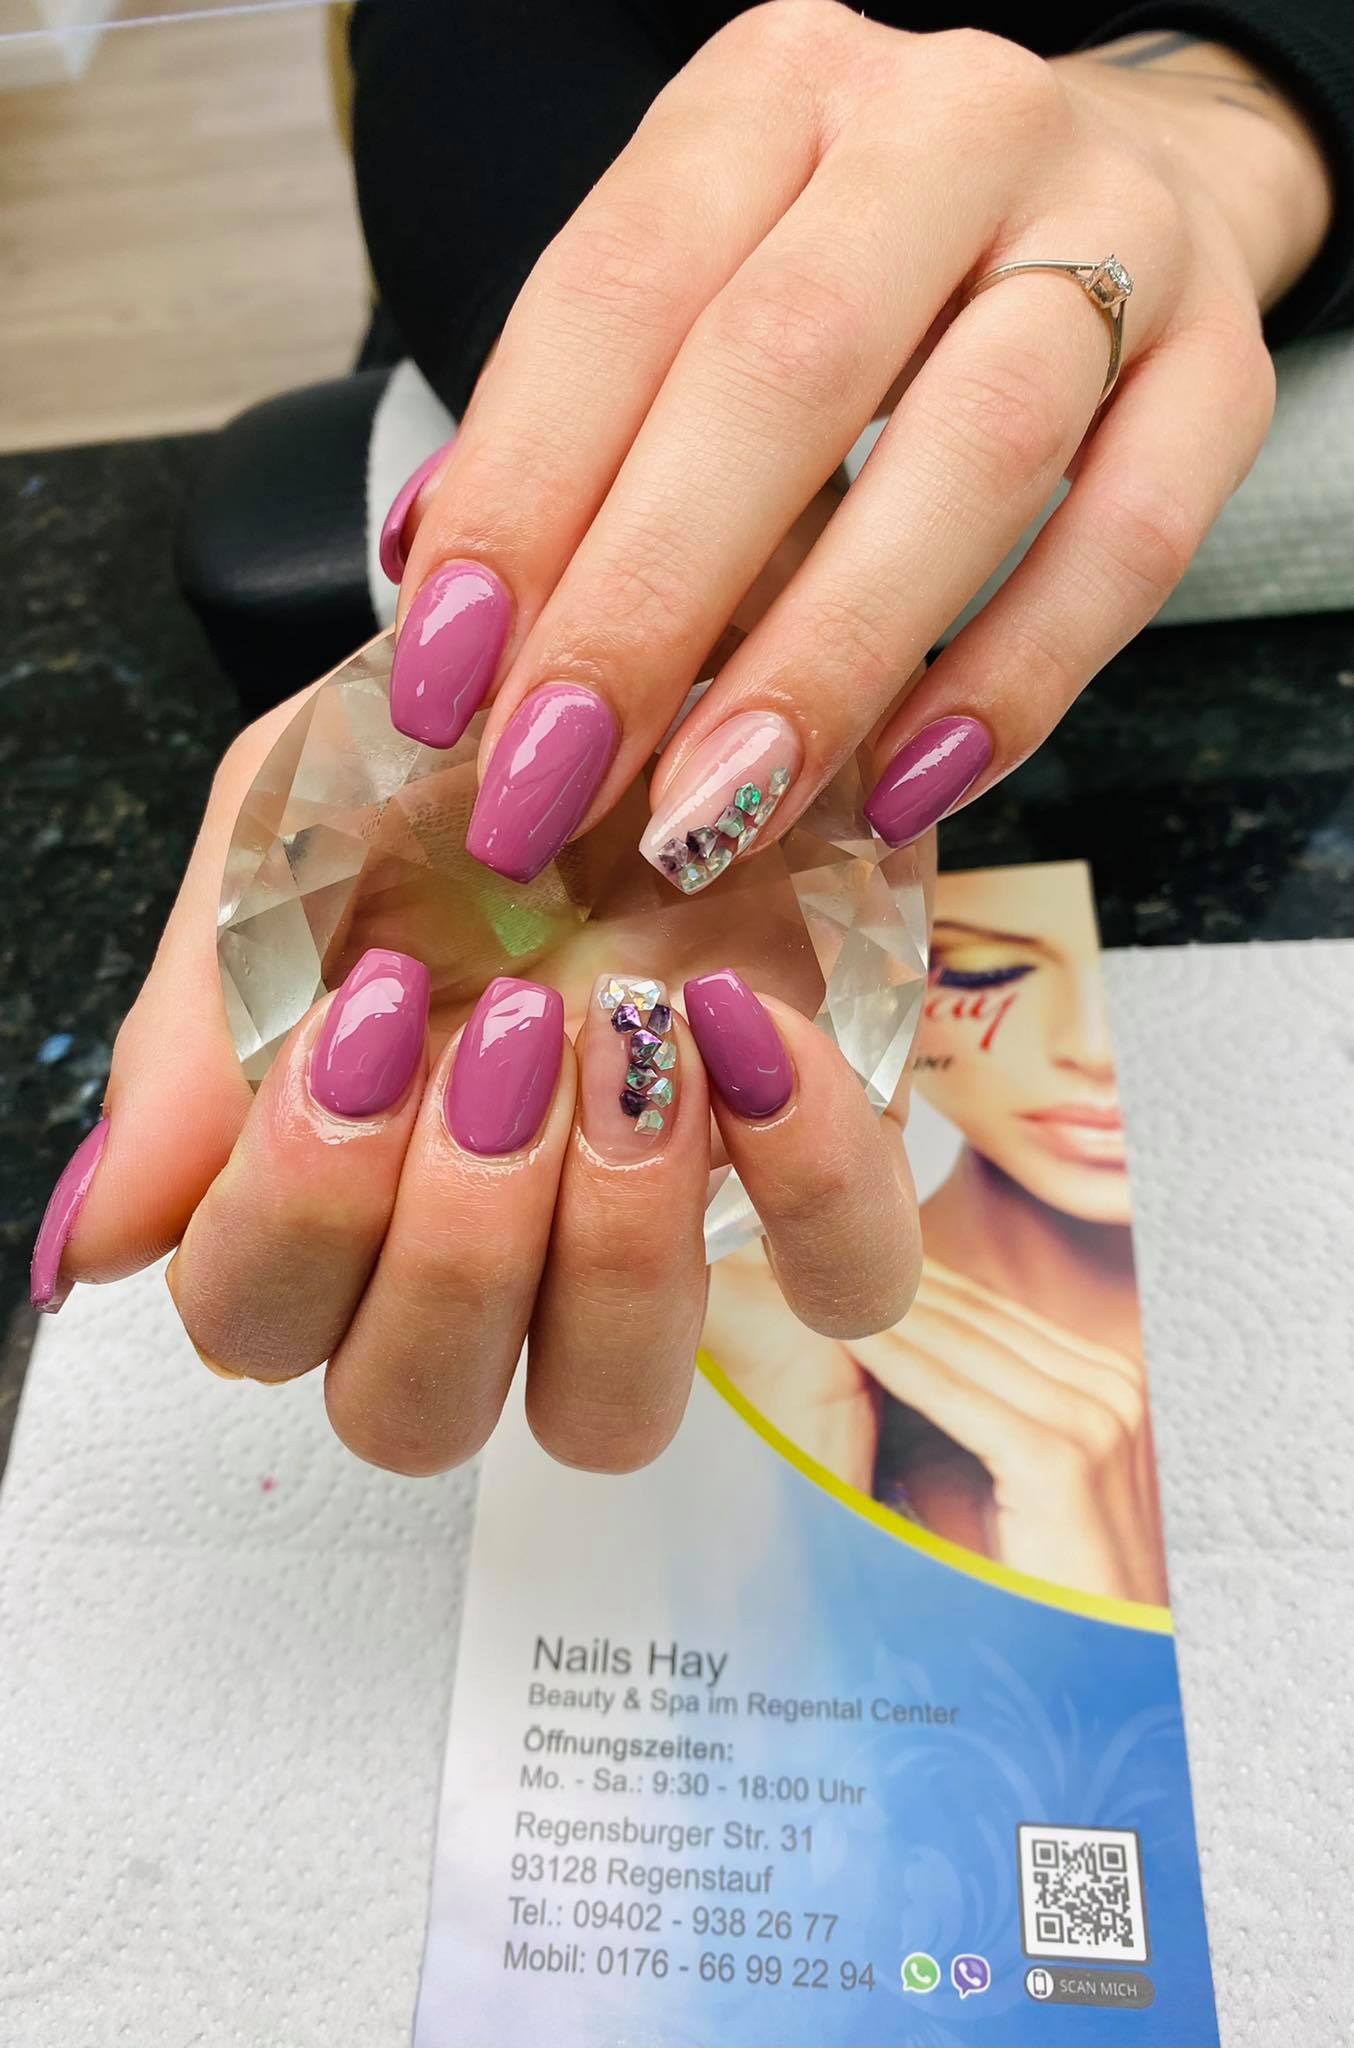 Nails Hay   Regensburger Str 31   93128 Regenstauf